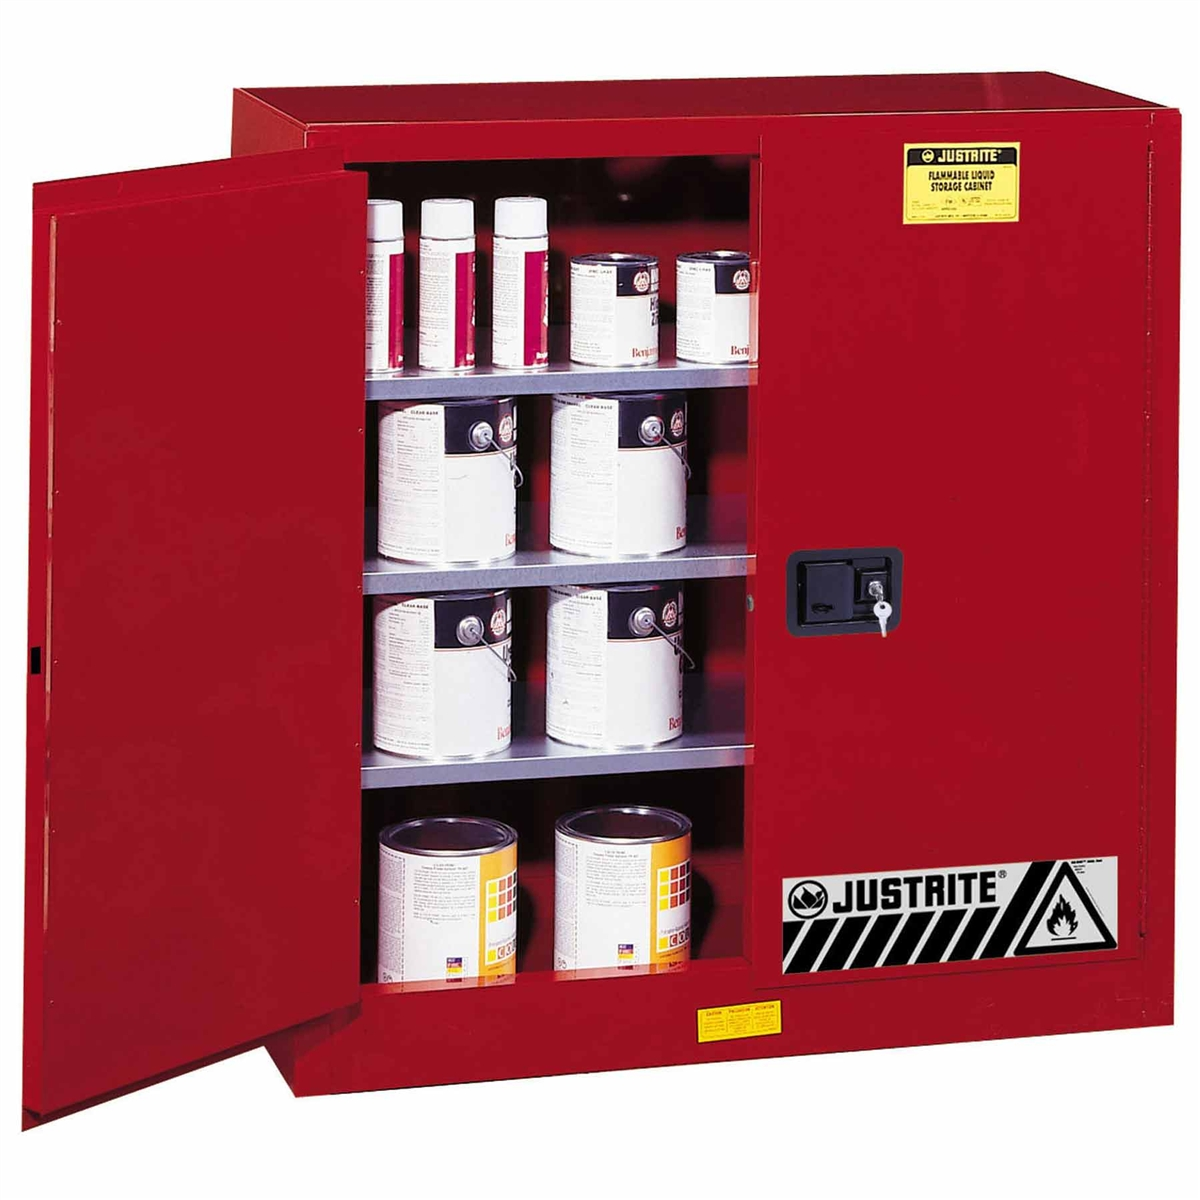 storage mhe new safety cabinet used fire liquids liquid htm flammable cabinets